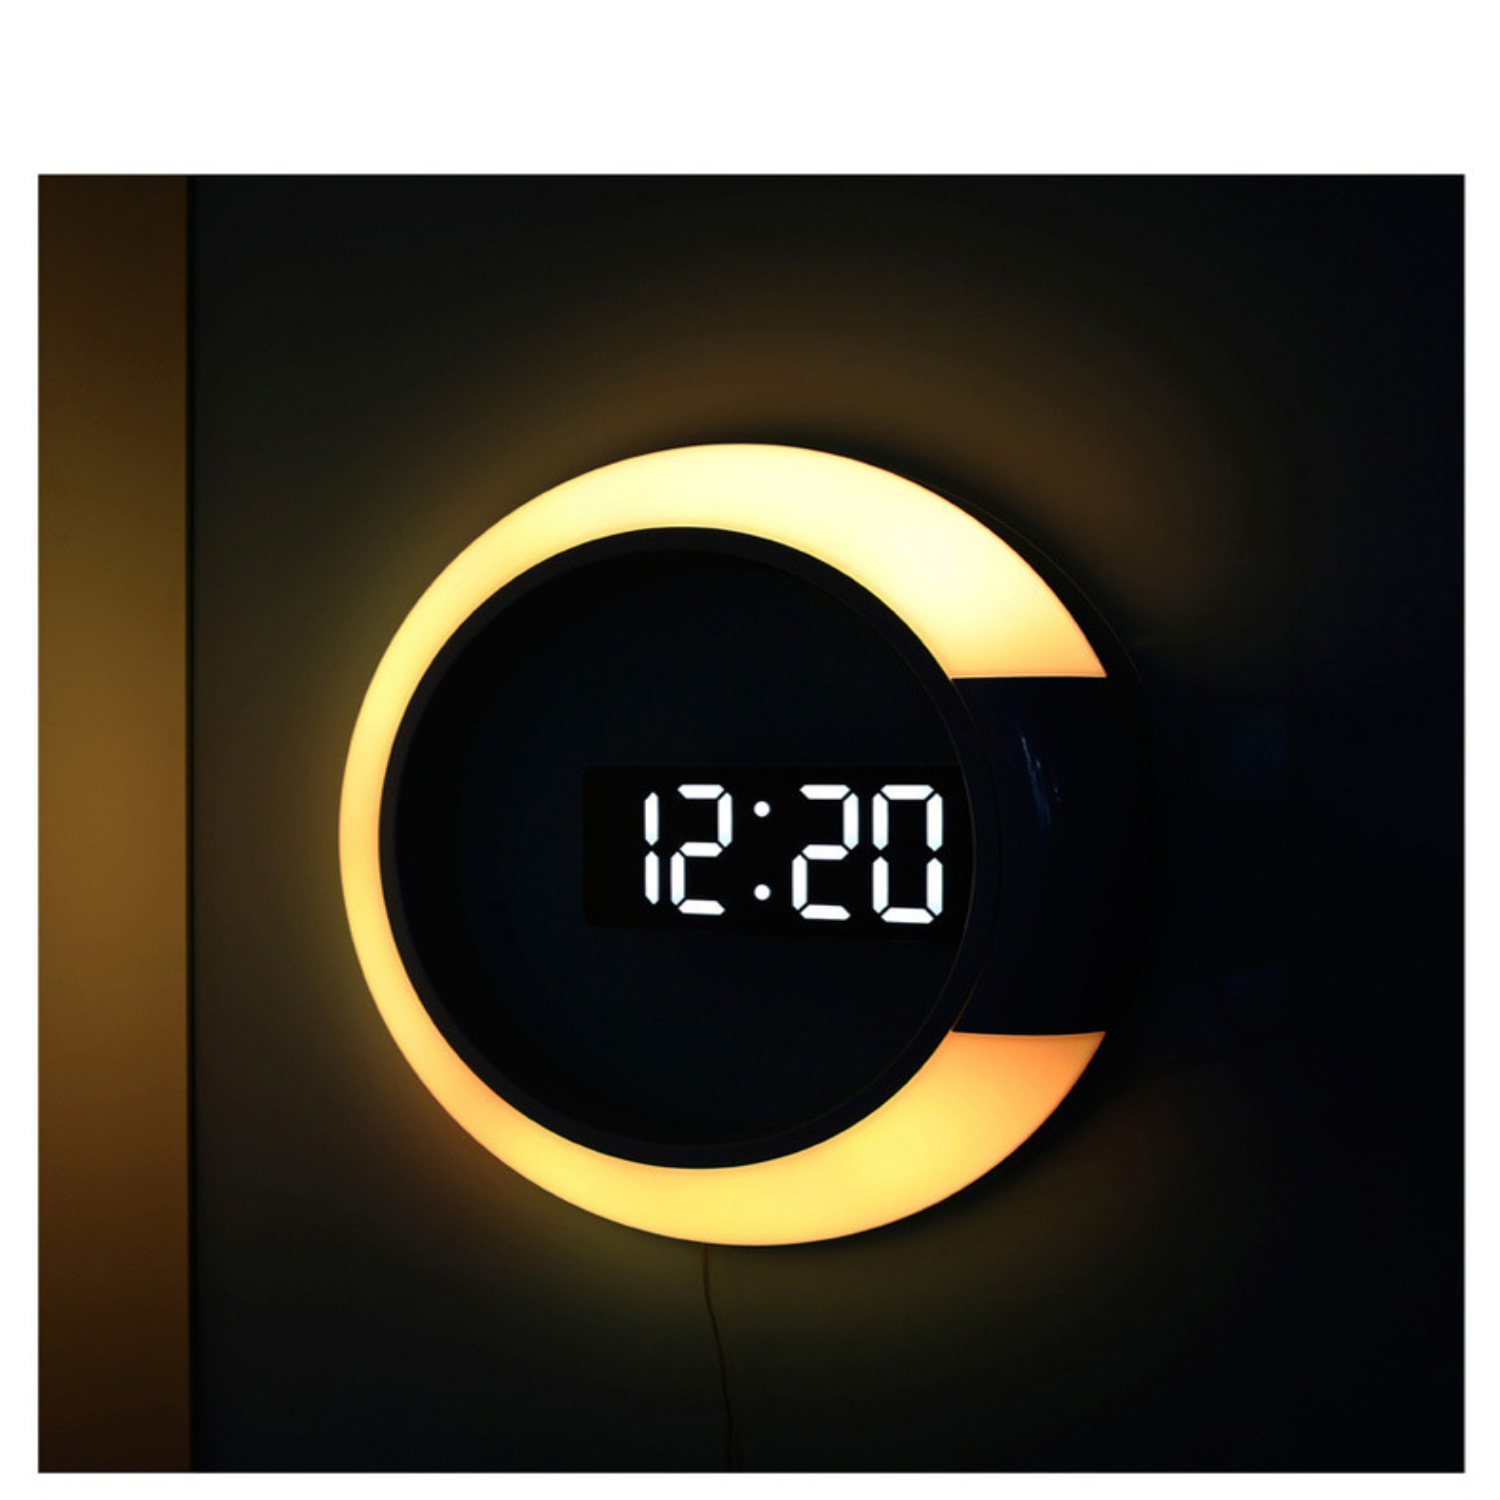 Nordic Digital Alarm Clocks Wall Hanging Watch Snooze Function Table Clock Calendar Thermometer Display Office Electronic Watch